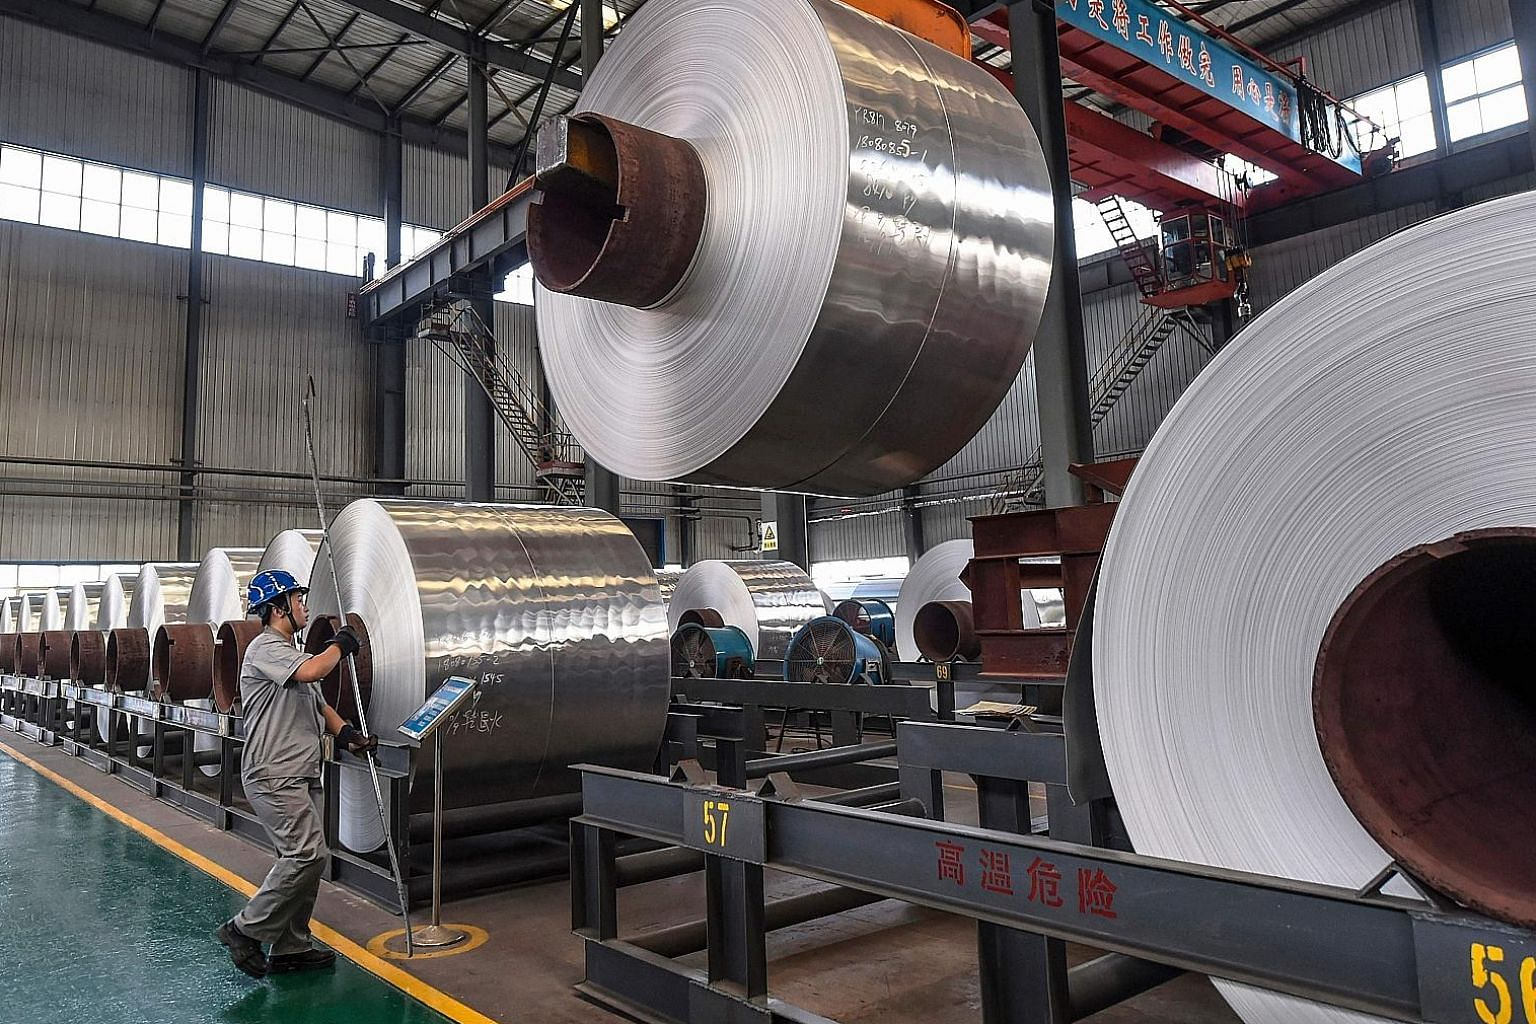 Rolls of sheet aluminium at a factory in Shandong province, China. Analysts say production of key goods such as motor vehicles and transport equipment continued to decline. Output of cars barely grew, while steel mills, aluminium smelters and oil ref